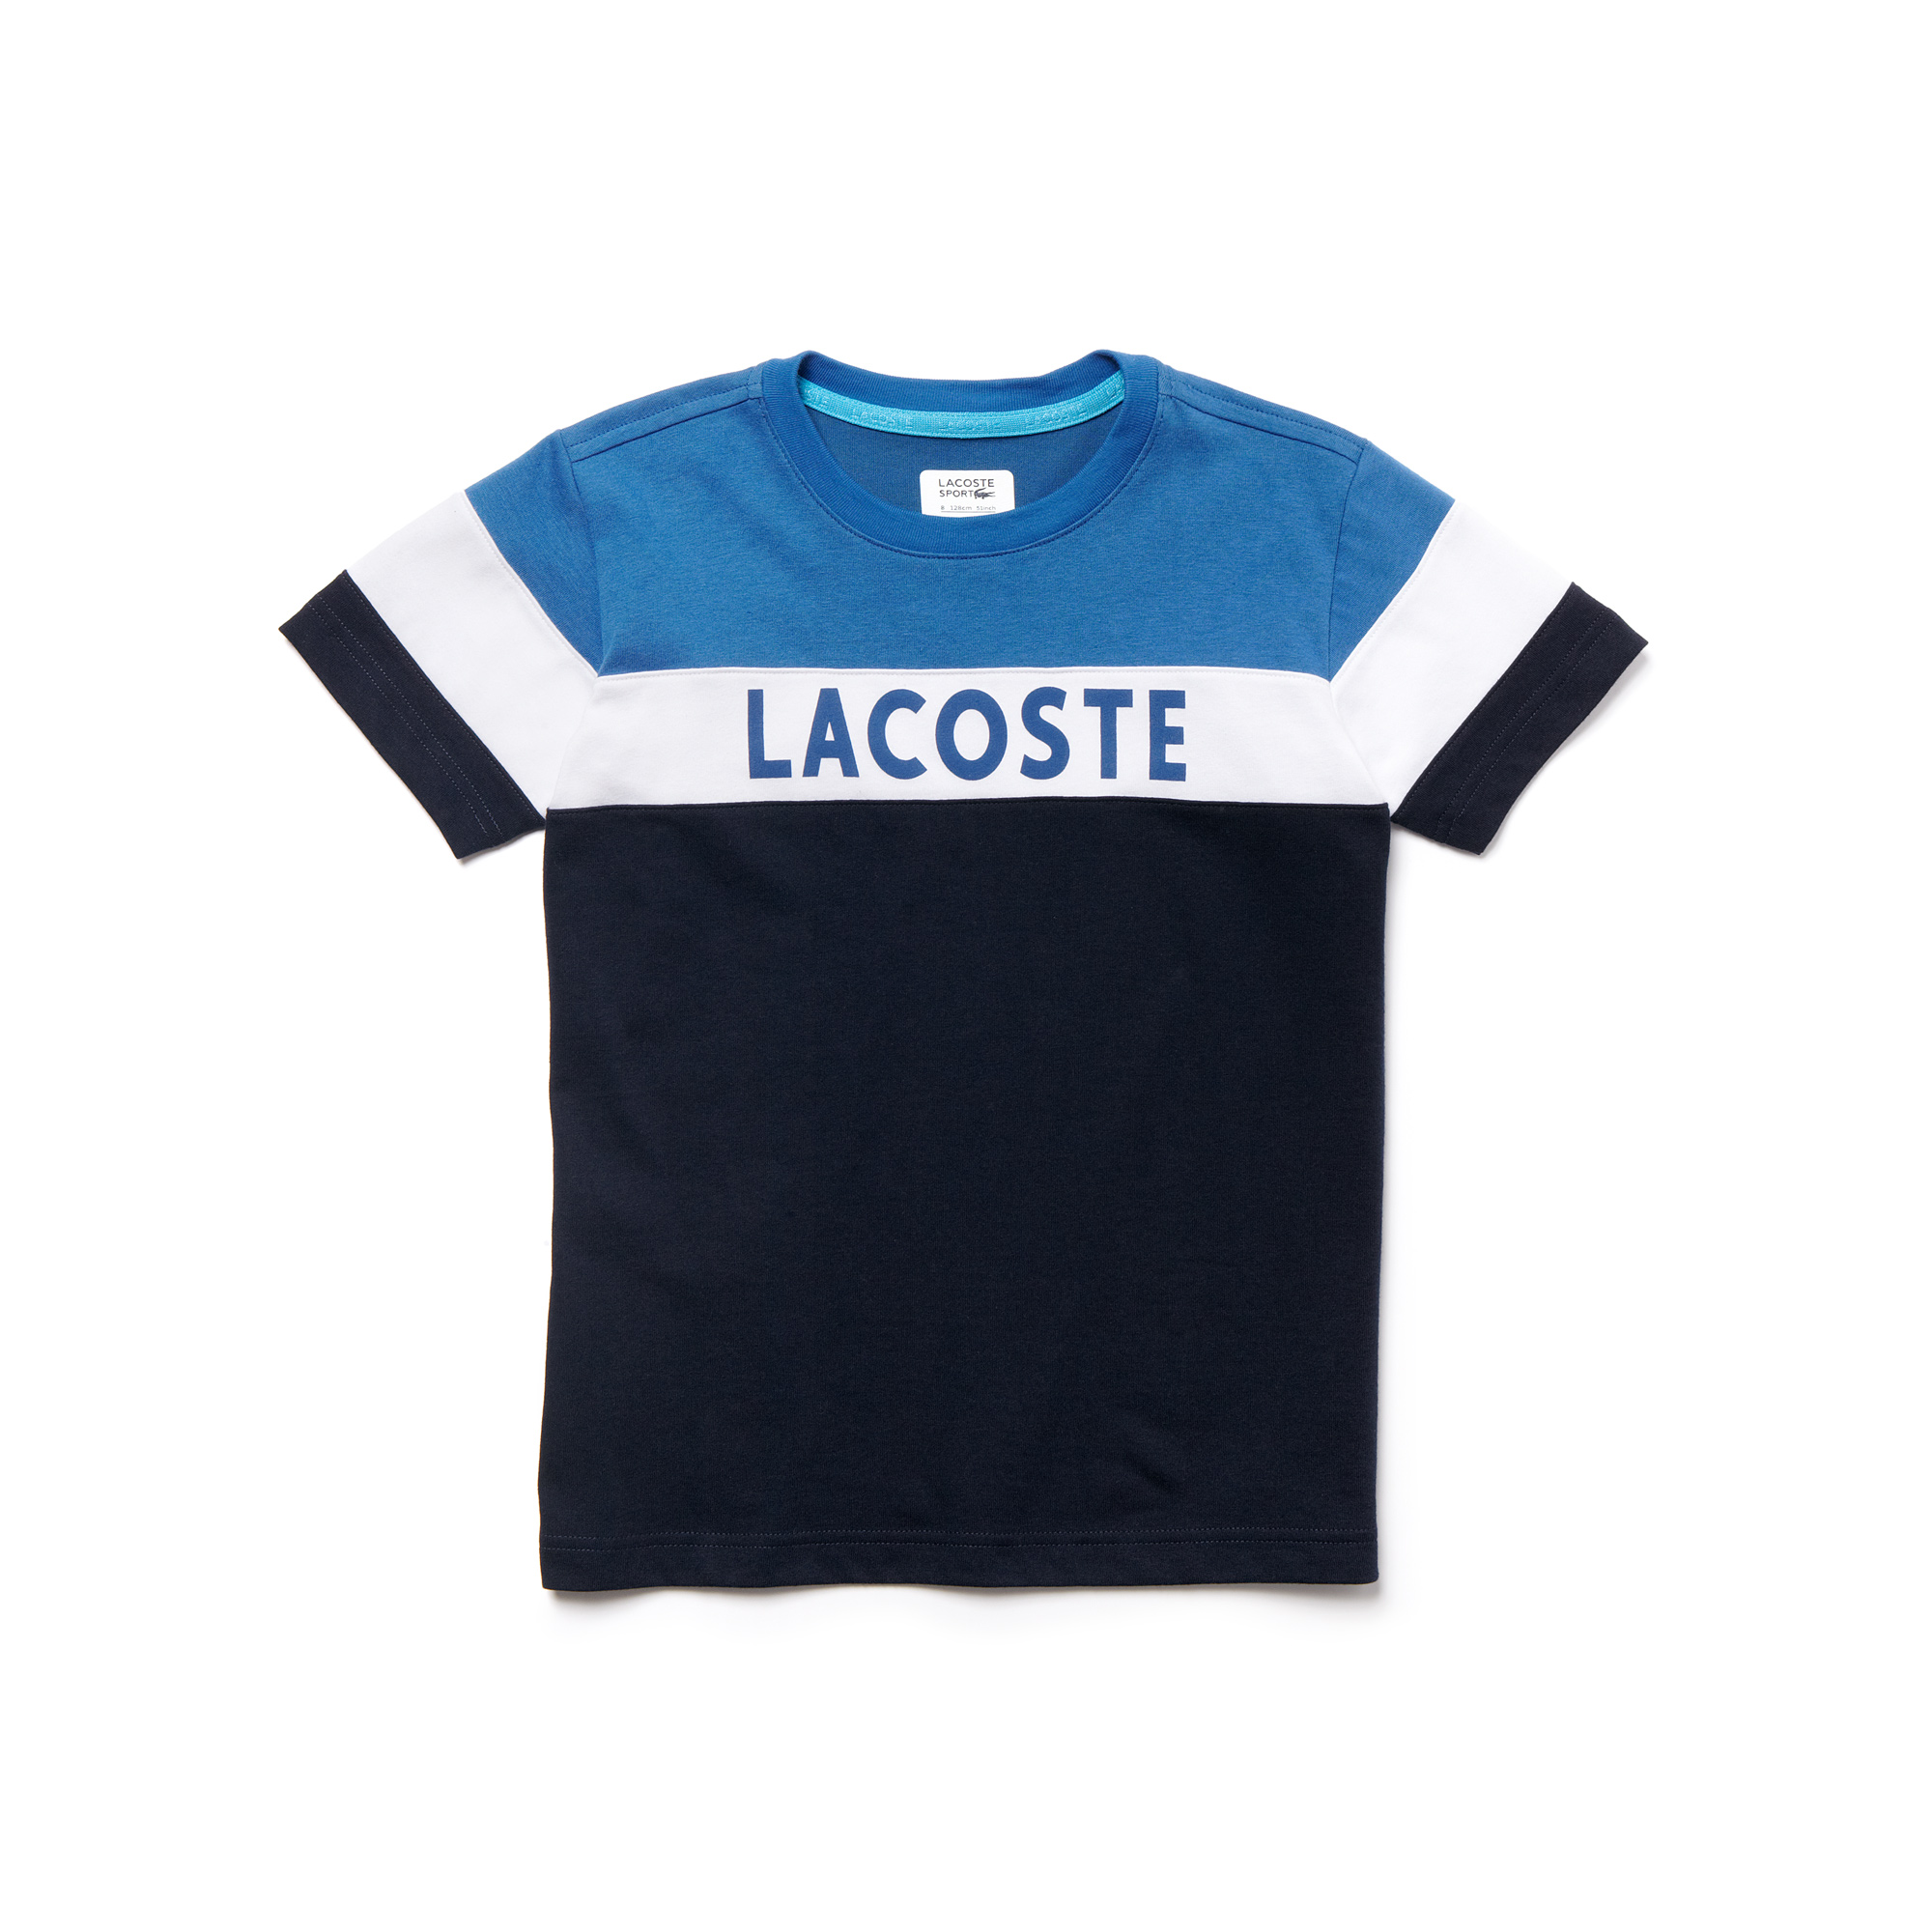 lacoste t shirt sport. Black Bedroom Furniture Sets. Home Design Ideas